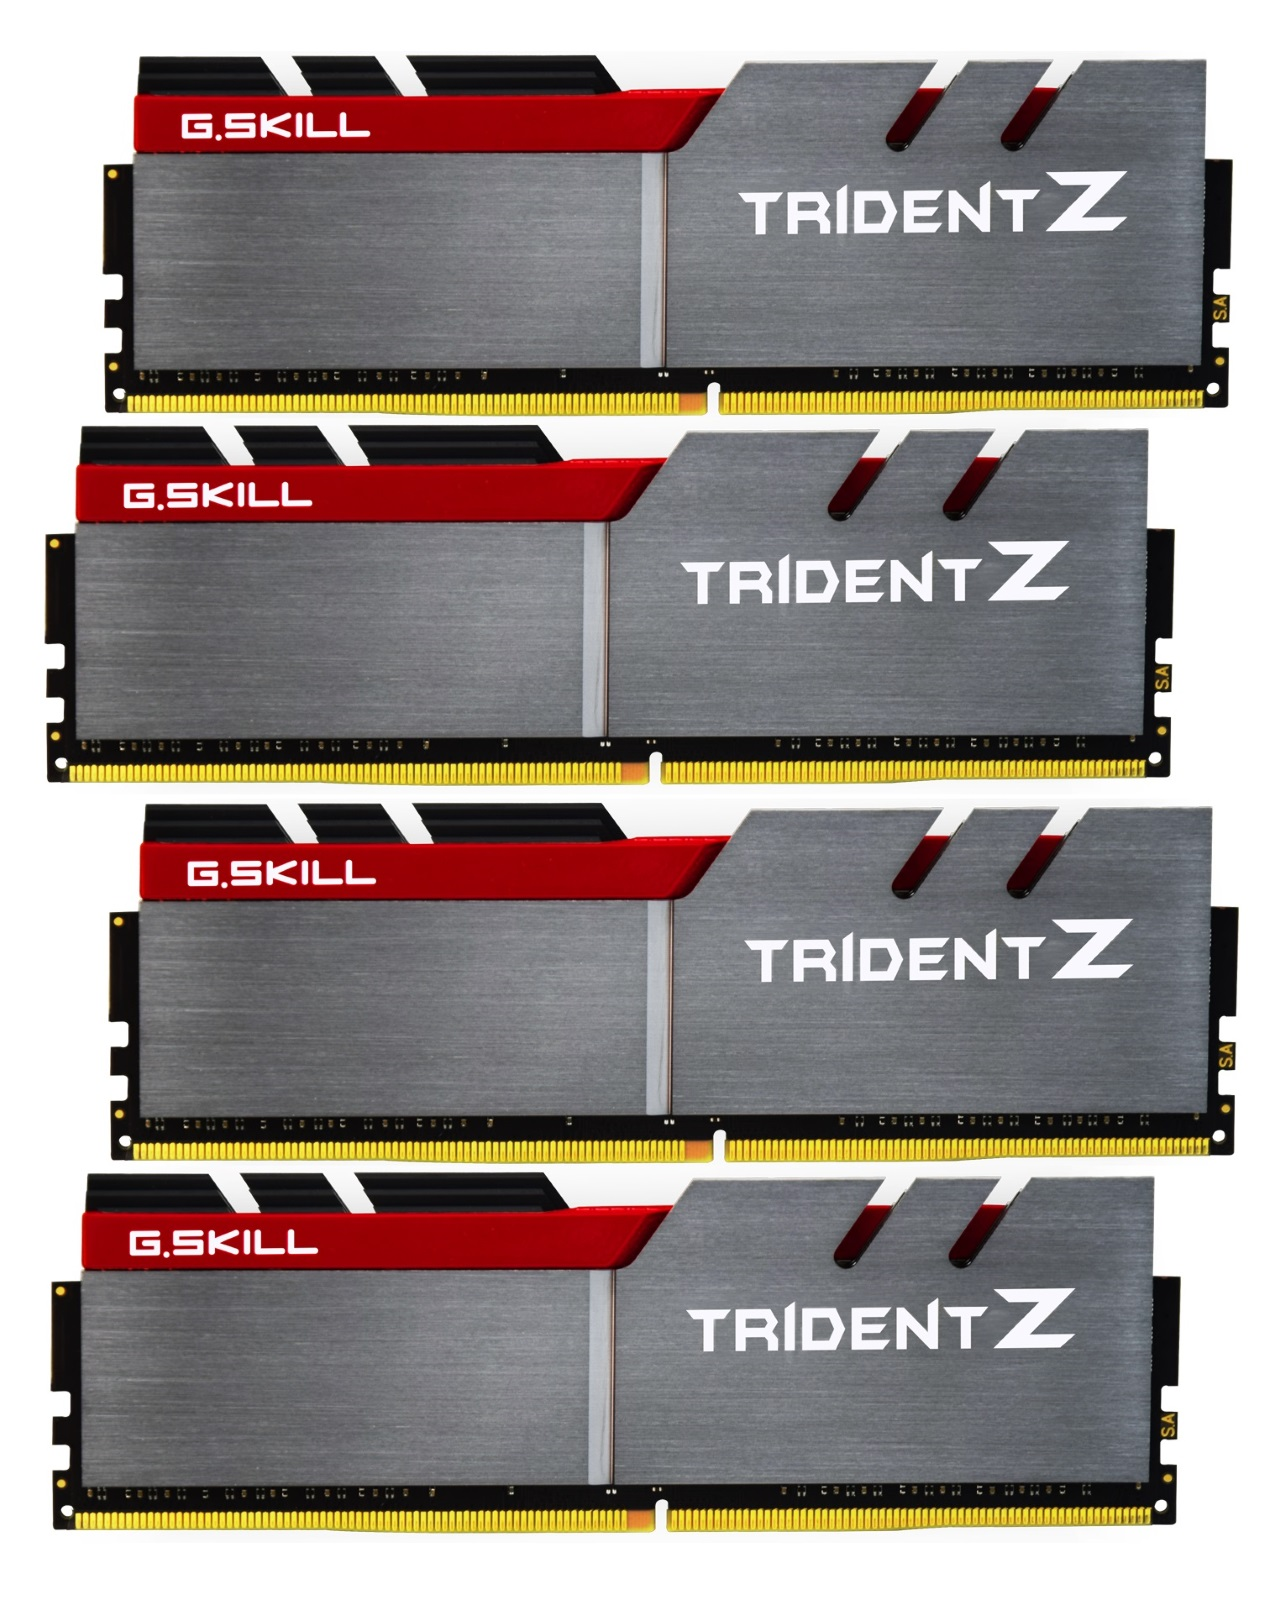 32GB G.Skill DDR4 Trident Z 4000Mhz PC4-32000 CL18 1.35V Quad Channel Kit (4x8GB) for Intel Z270